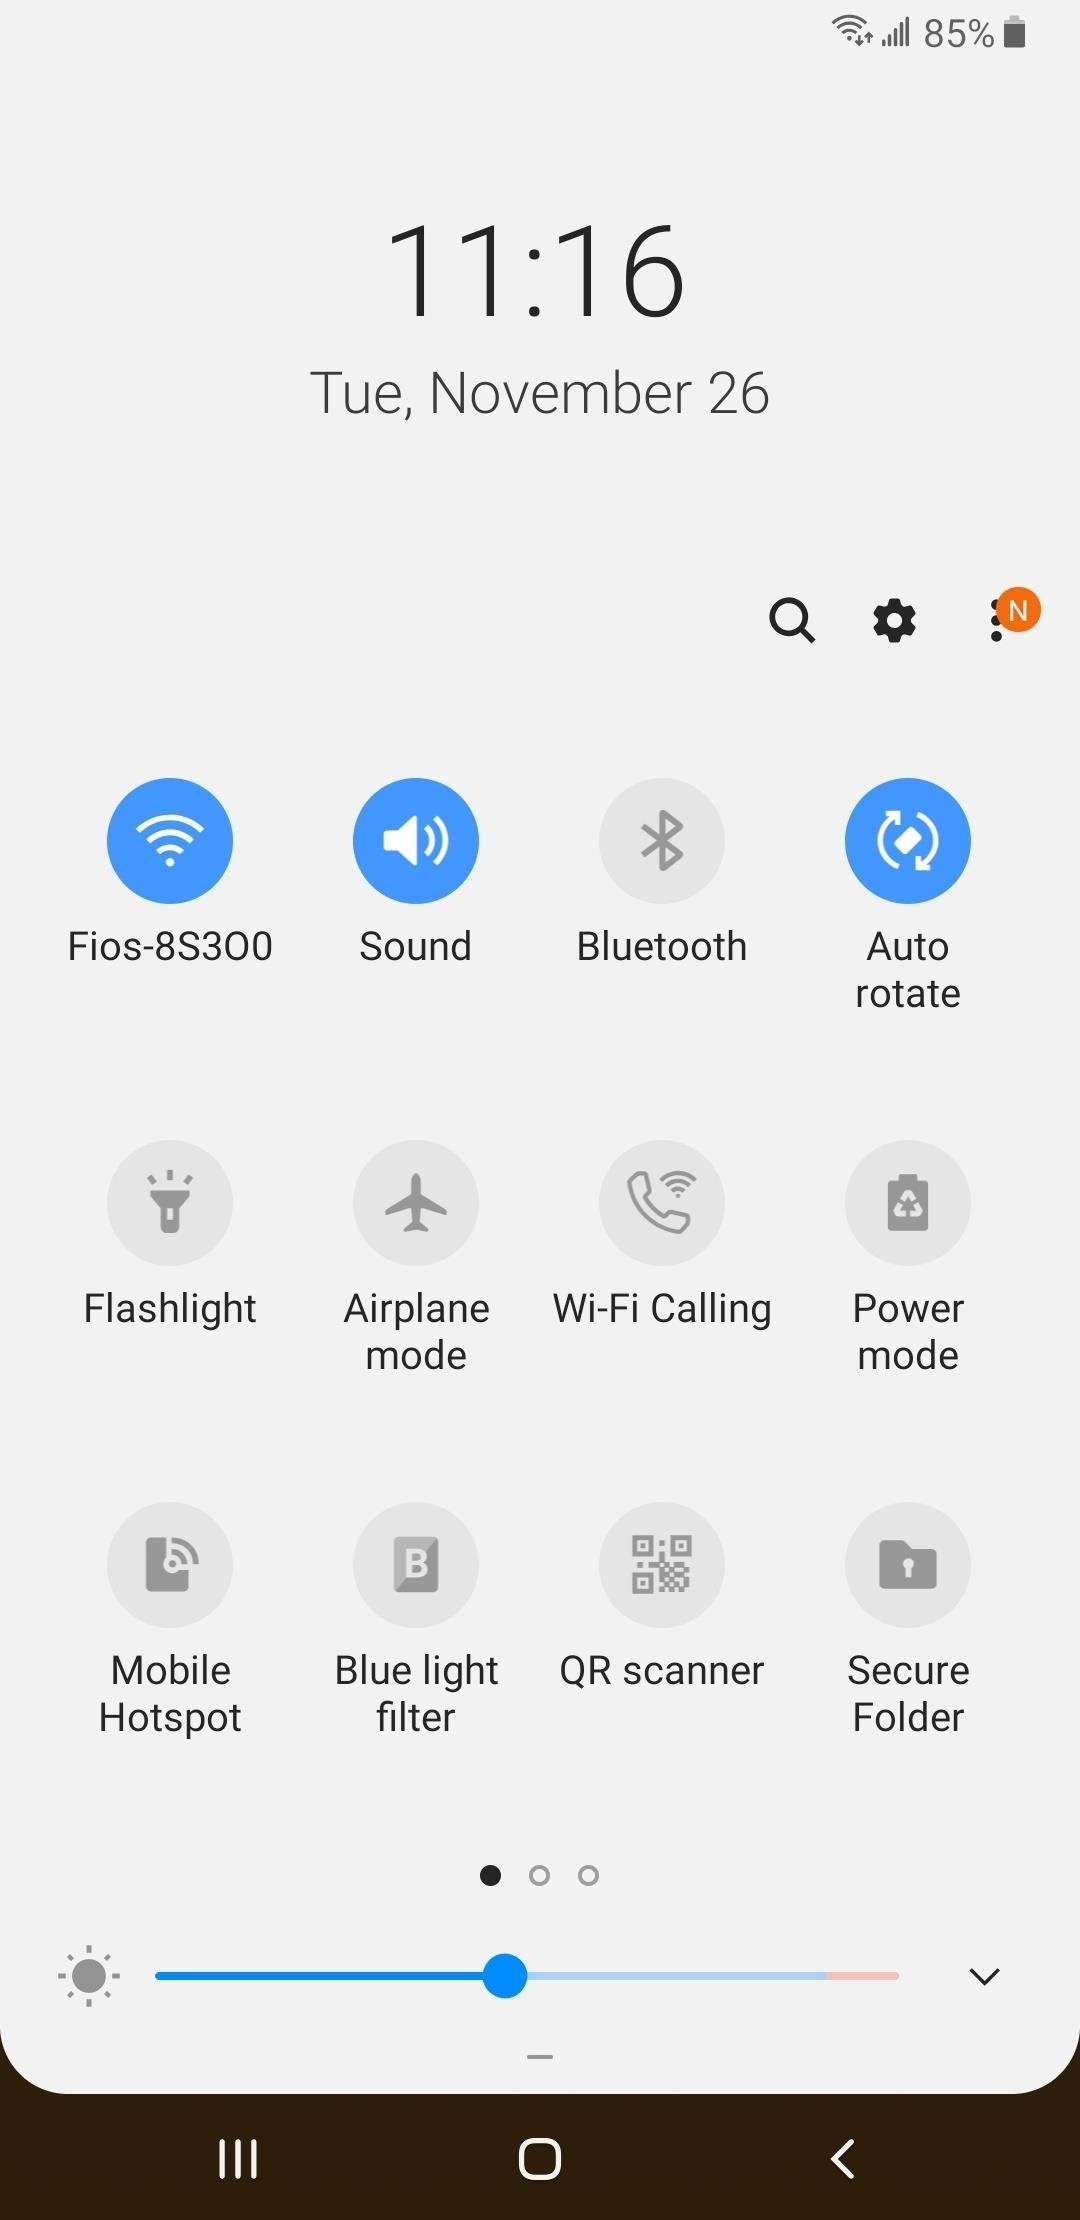 All new functions and changes in the Samsung One UI 2 for Galaxy devices